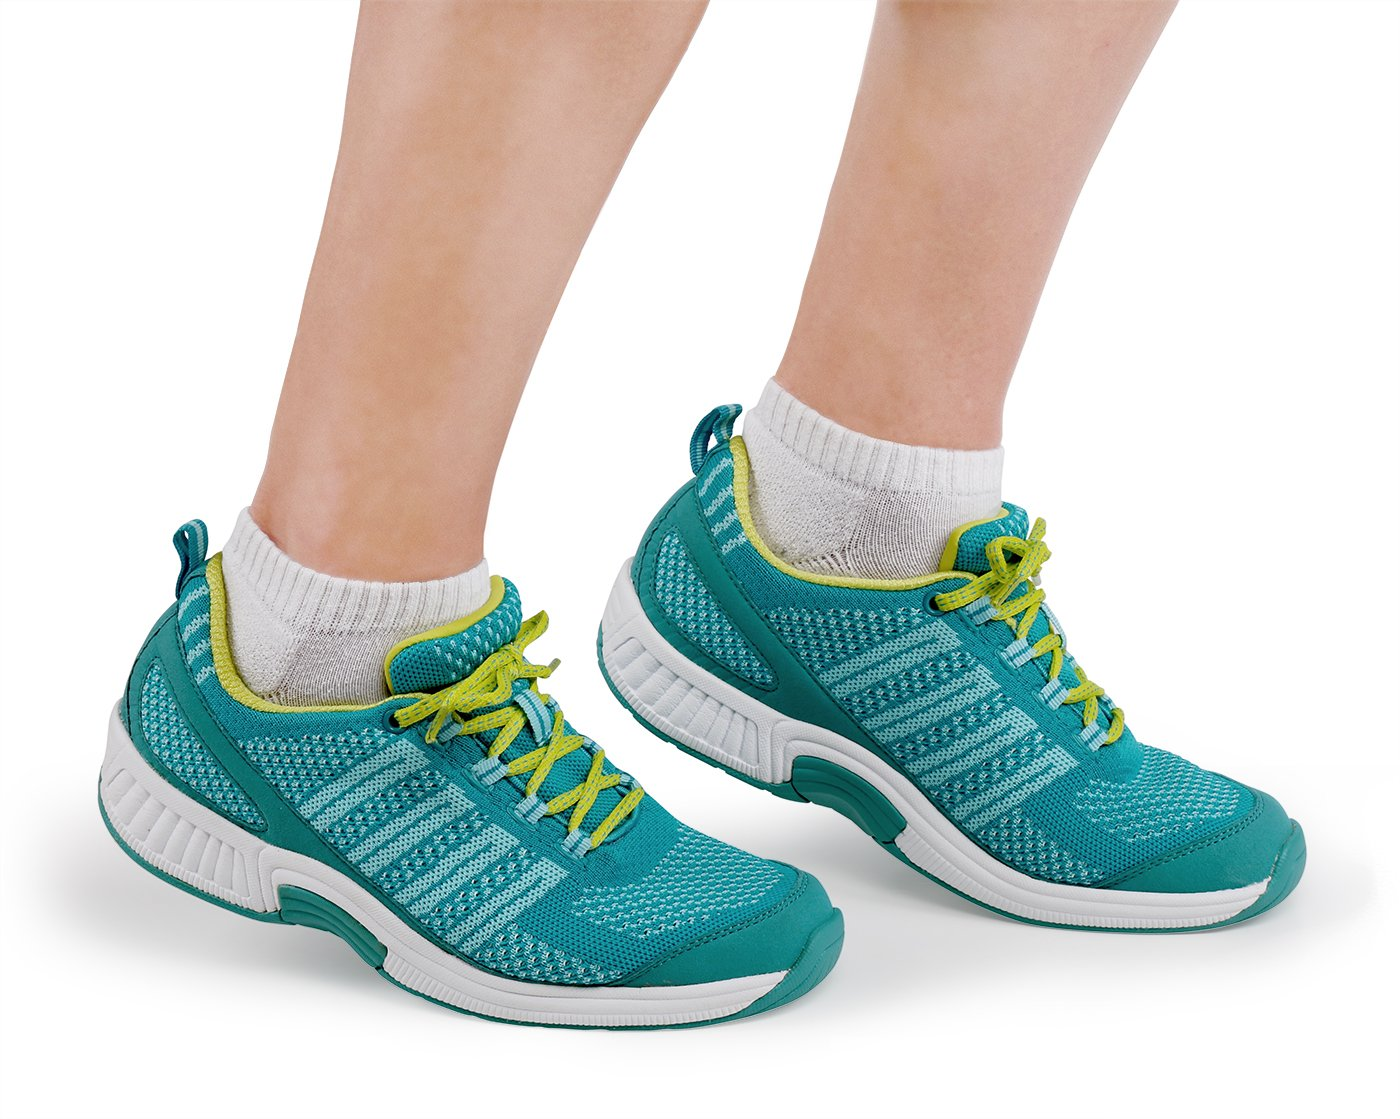 Orthofeet Proven Pain Relief Coral Women's Orthopedic Diabetic Athletic Sneaker B01MZZSMGV 7 XW US|Turquoise